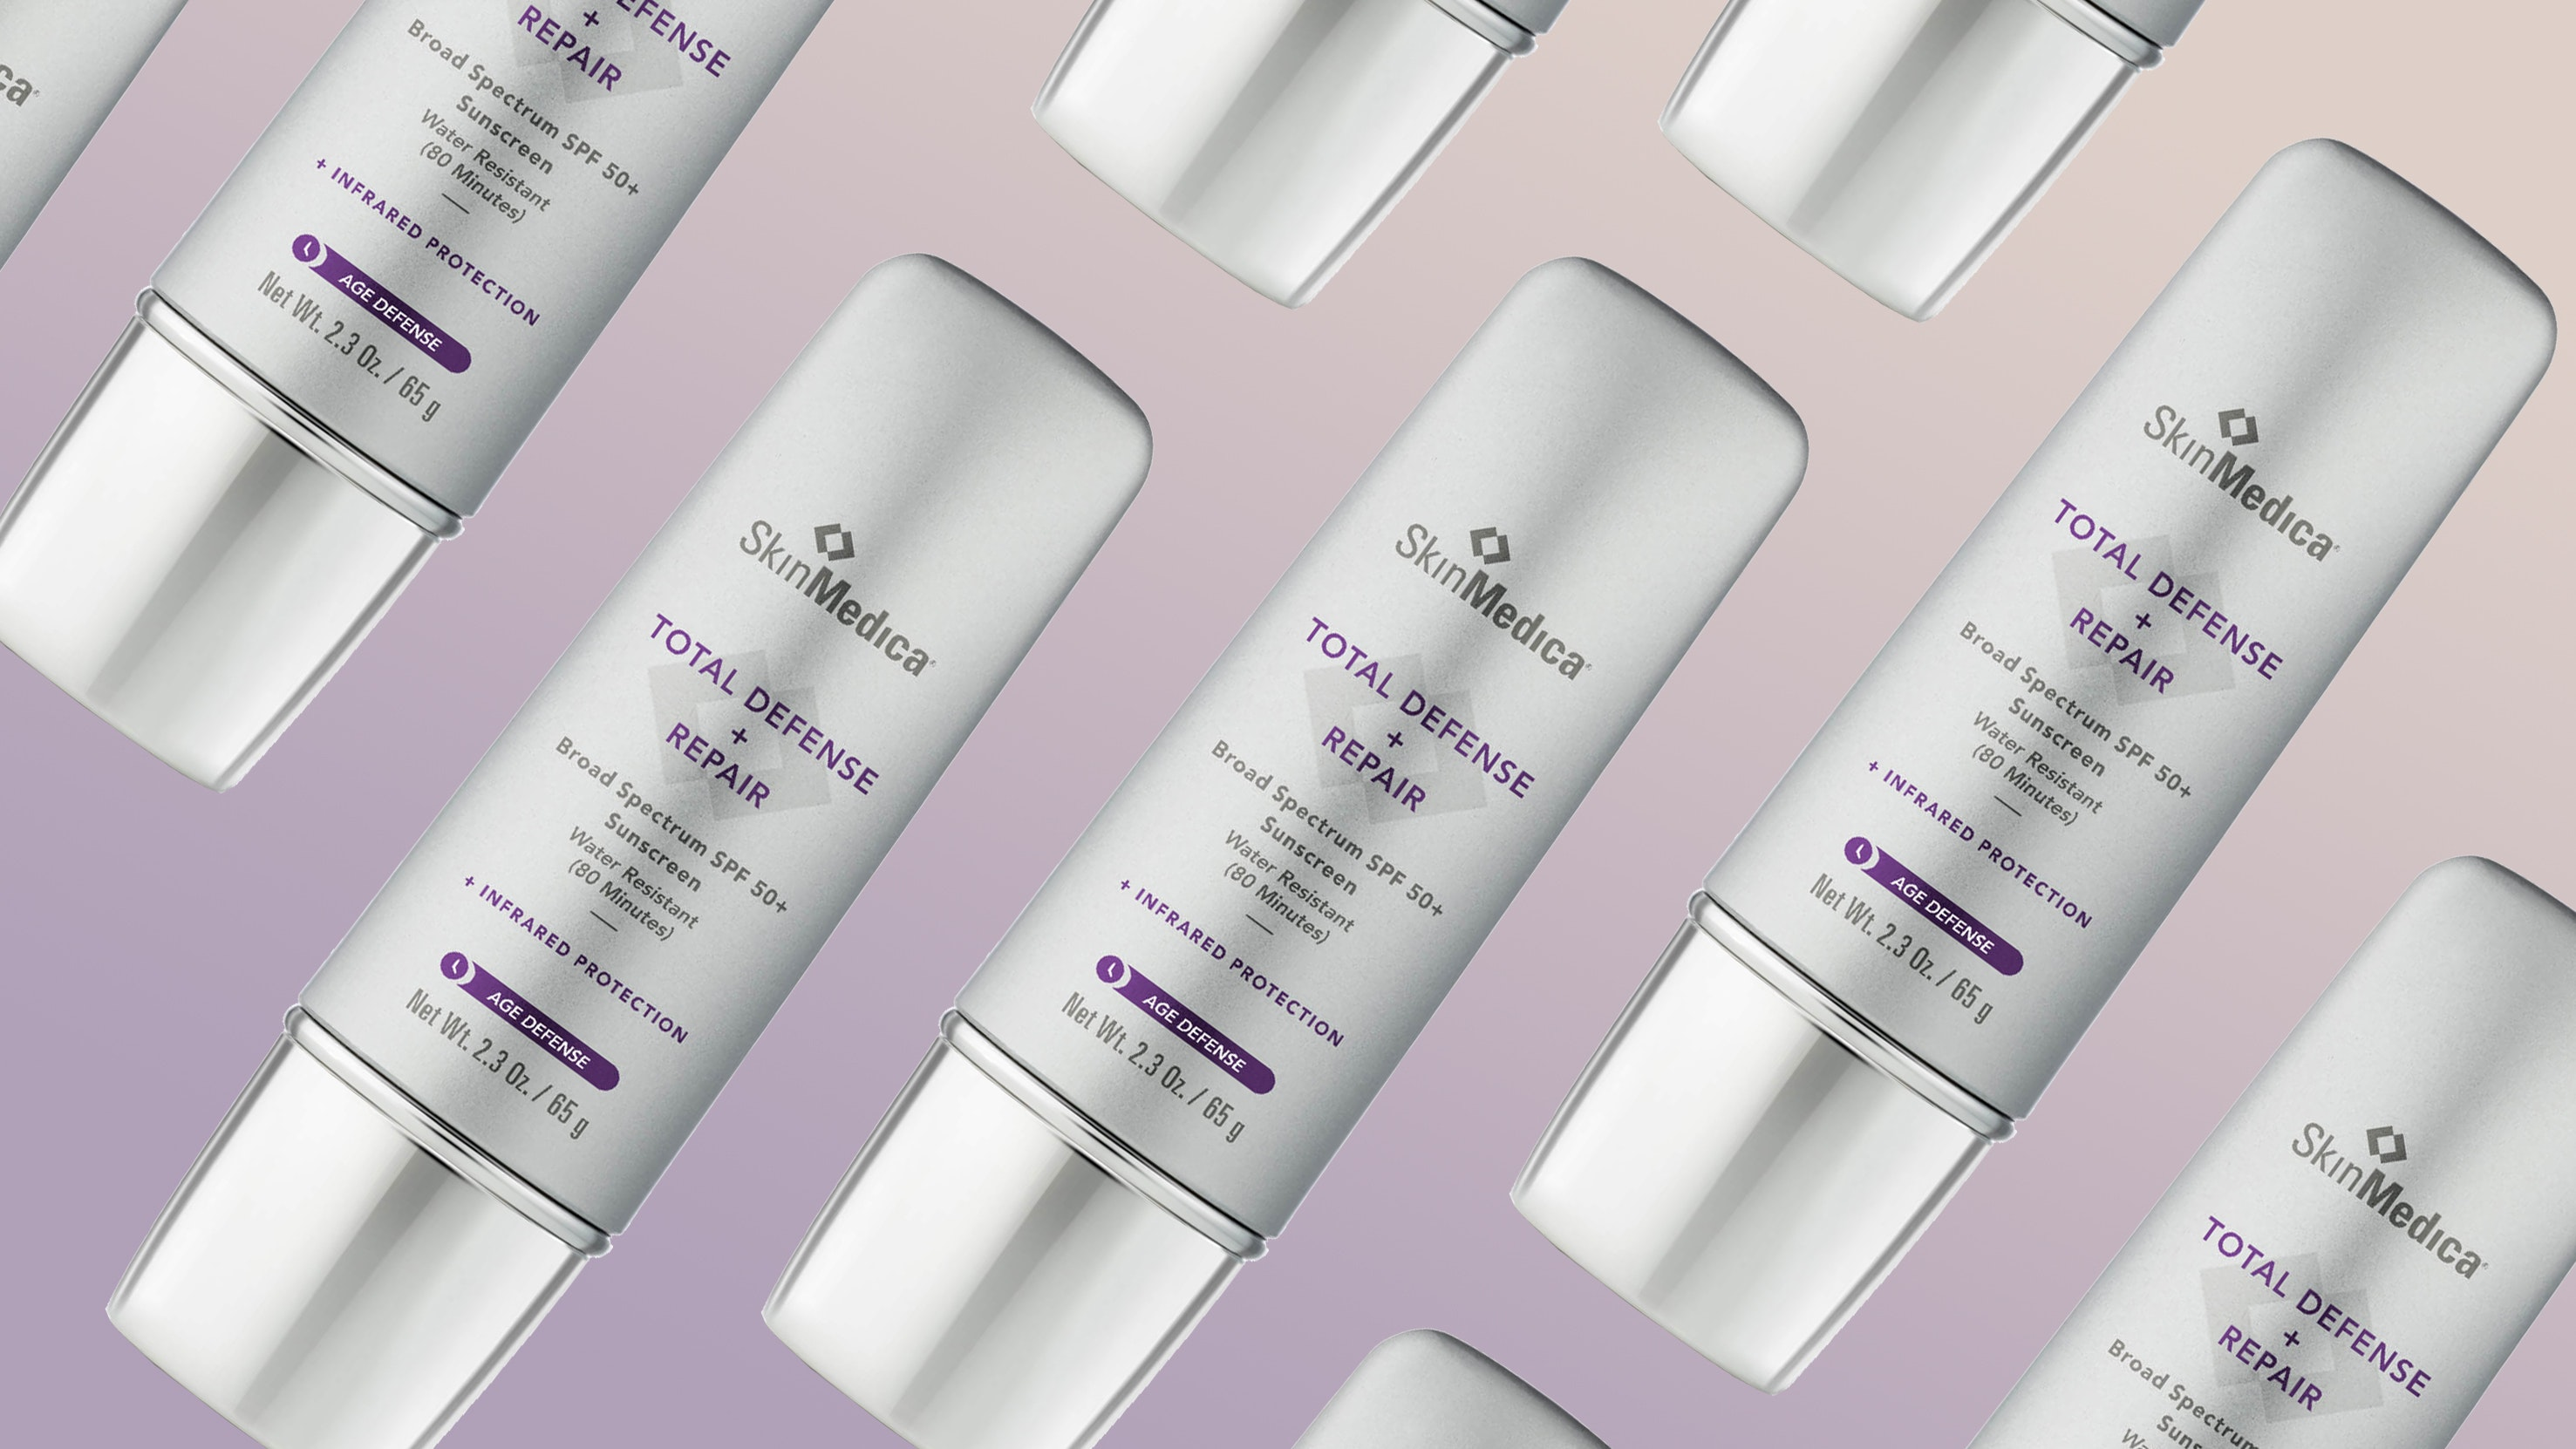 I Used to Skip Wearing Sunscreen Daily — Until I Tried This SkinMedica One